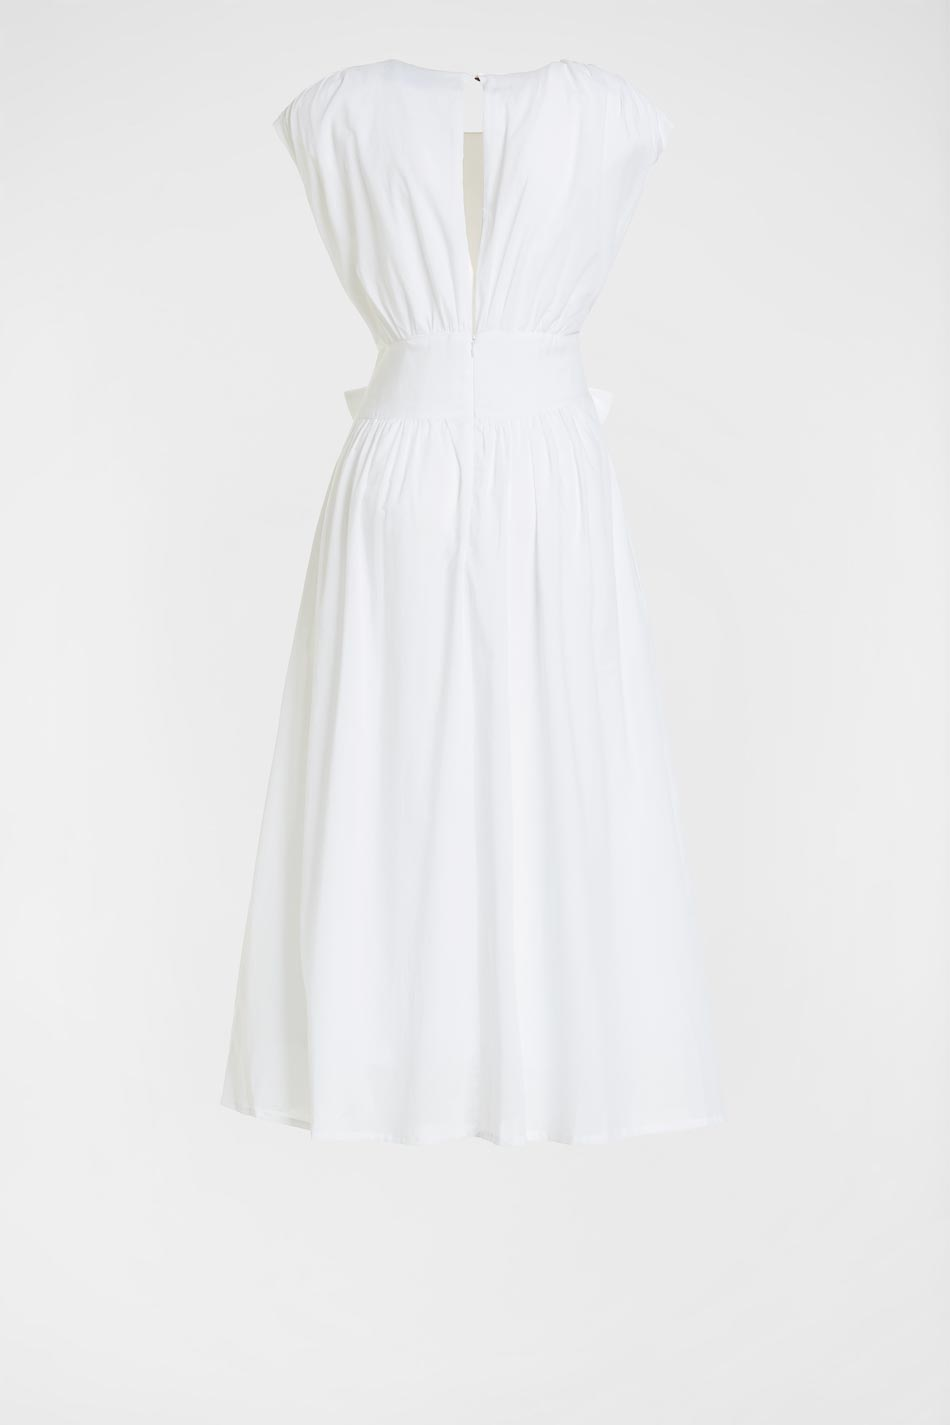 COTTON VOILE DRESS